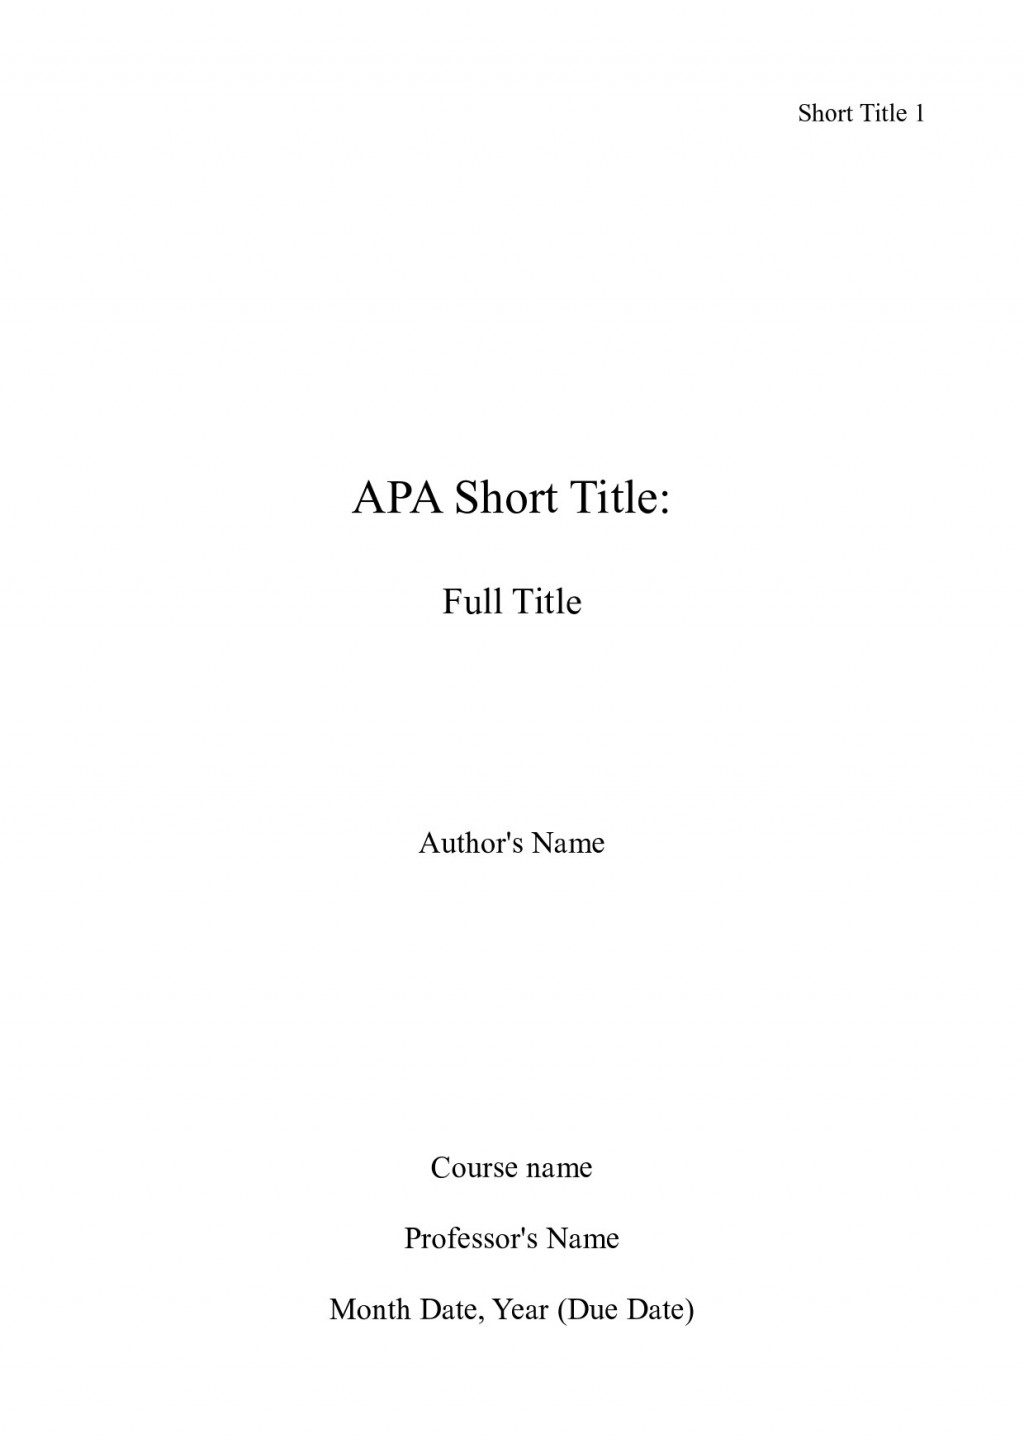 002 Apa Essay Cover Page Mla Format With Letter Best Of Writing Help Incredible Correct Title Front Research Large